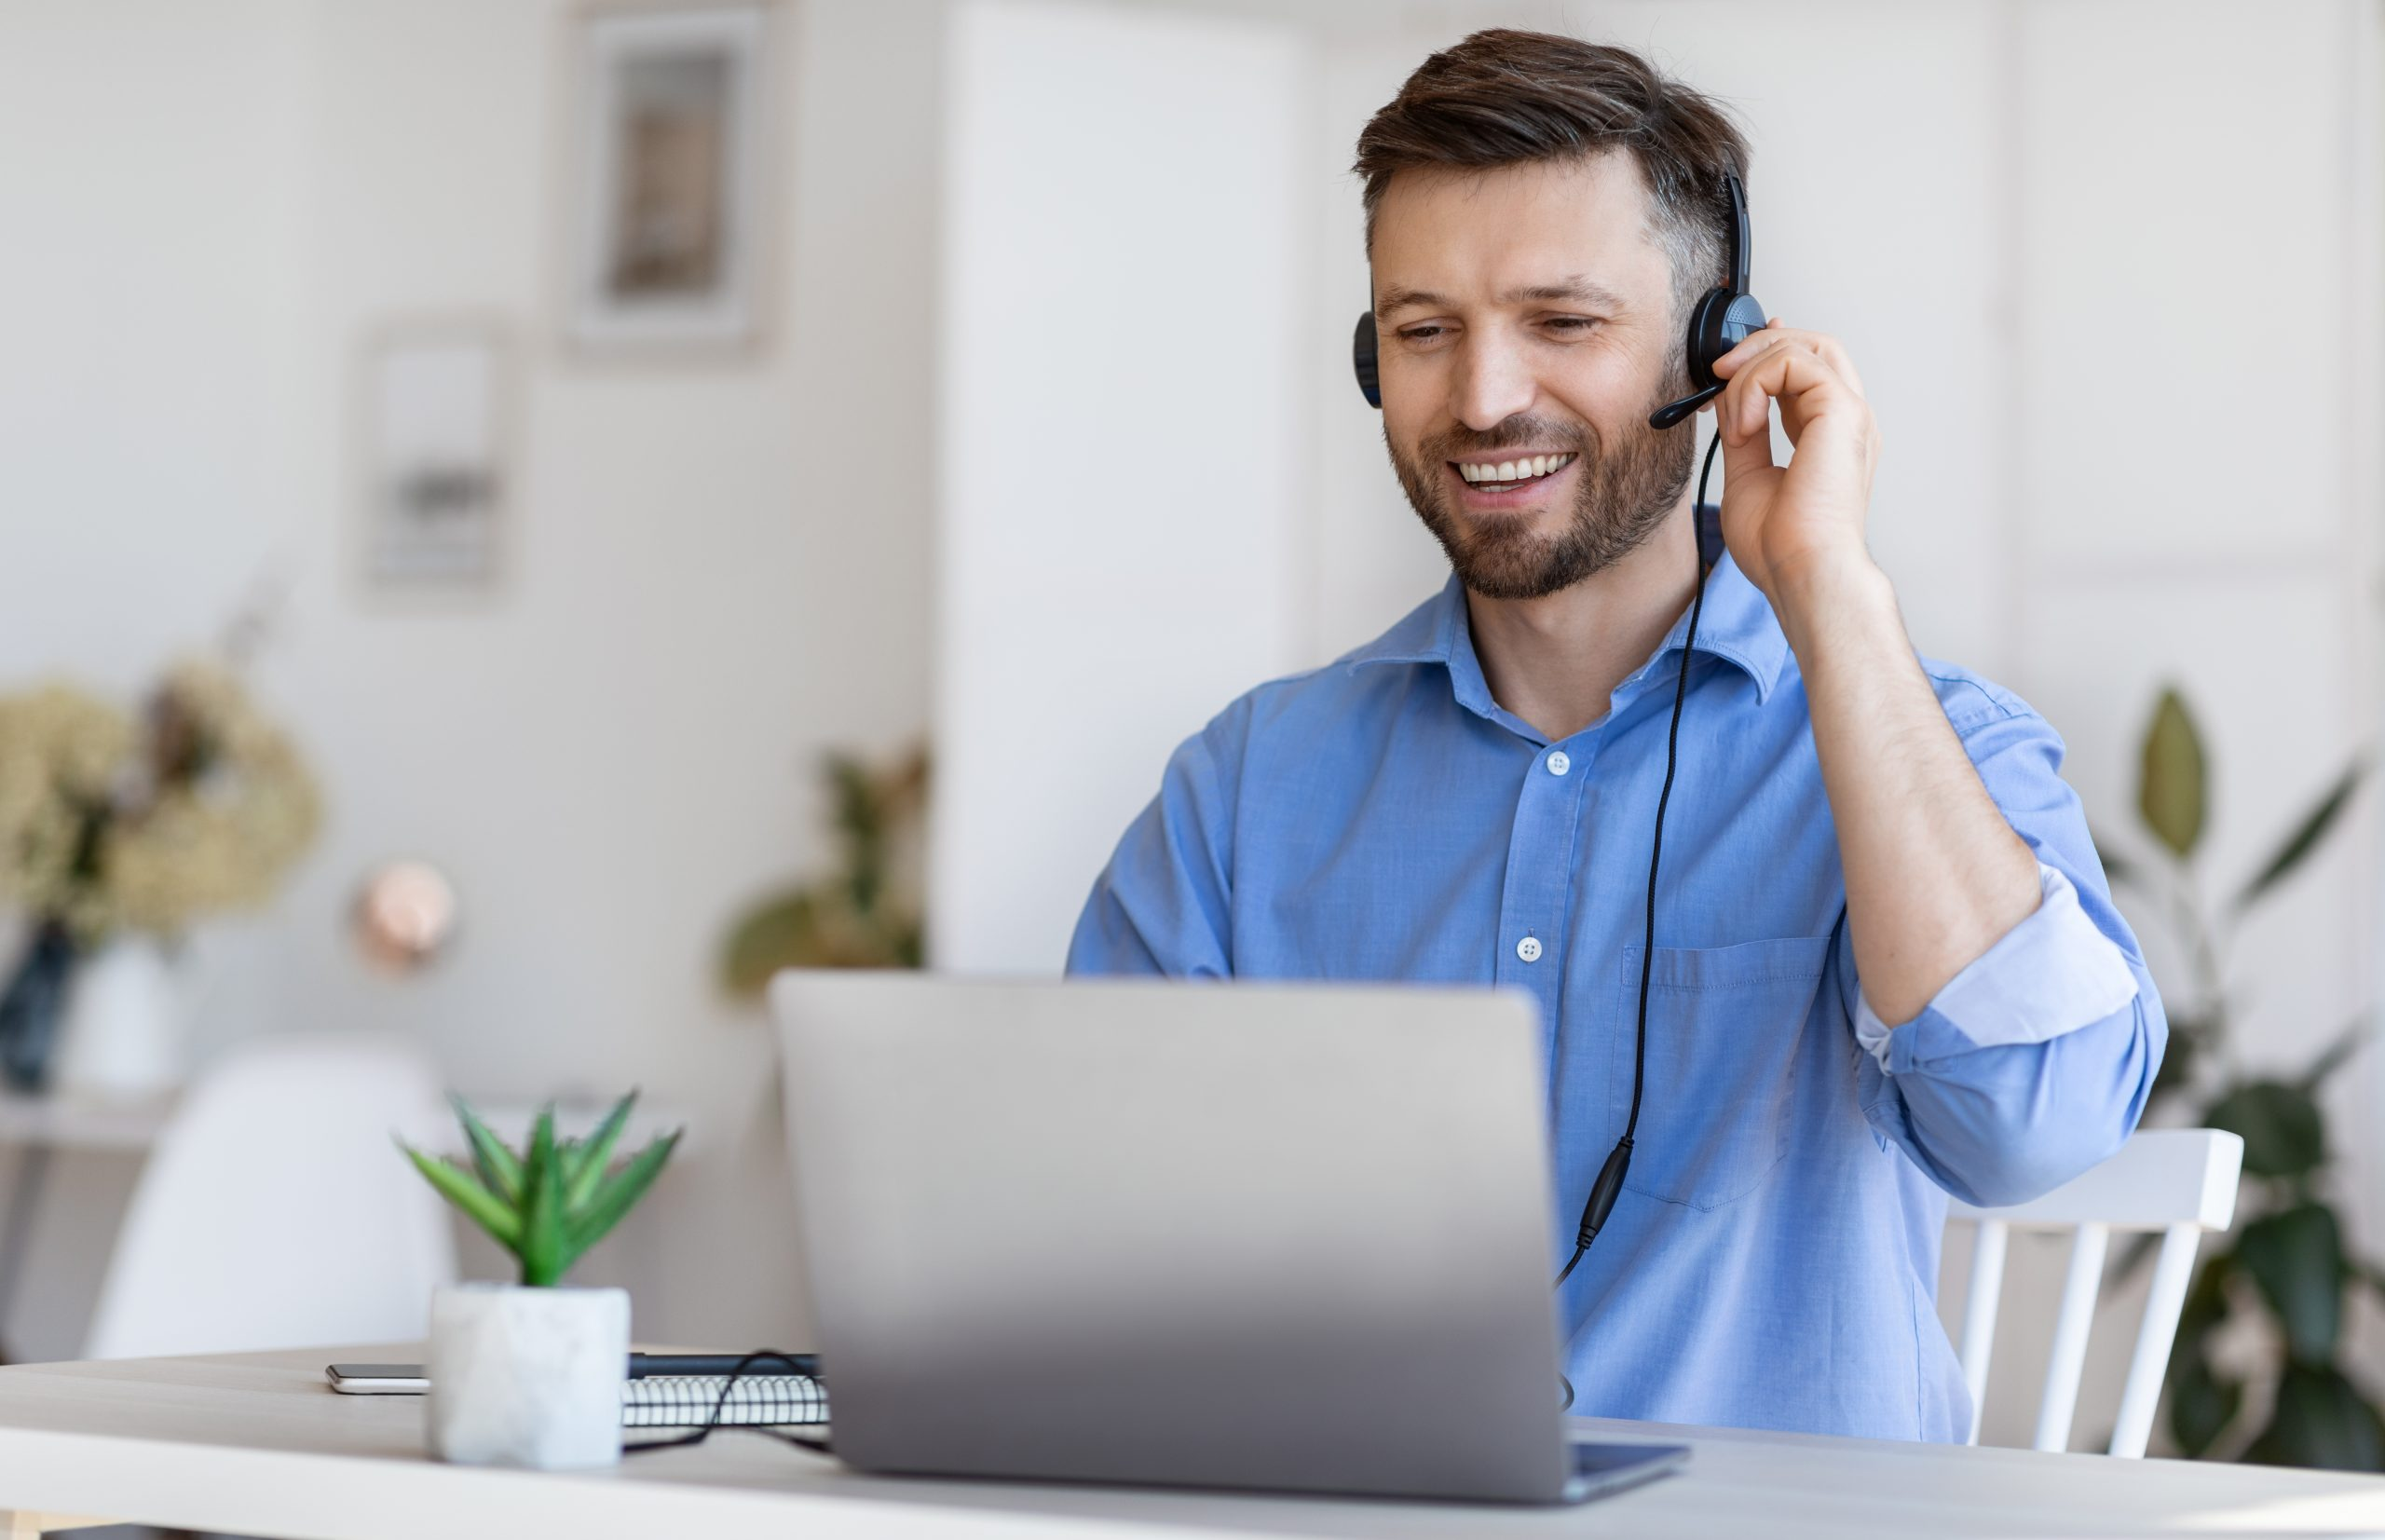 Hotline Operator. Handsome Man Customer Support Manager In Headset Consulting Clients Online